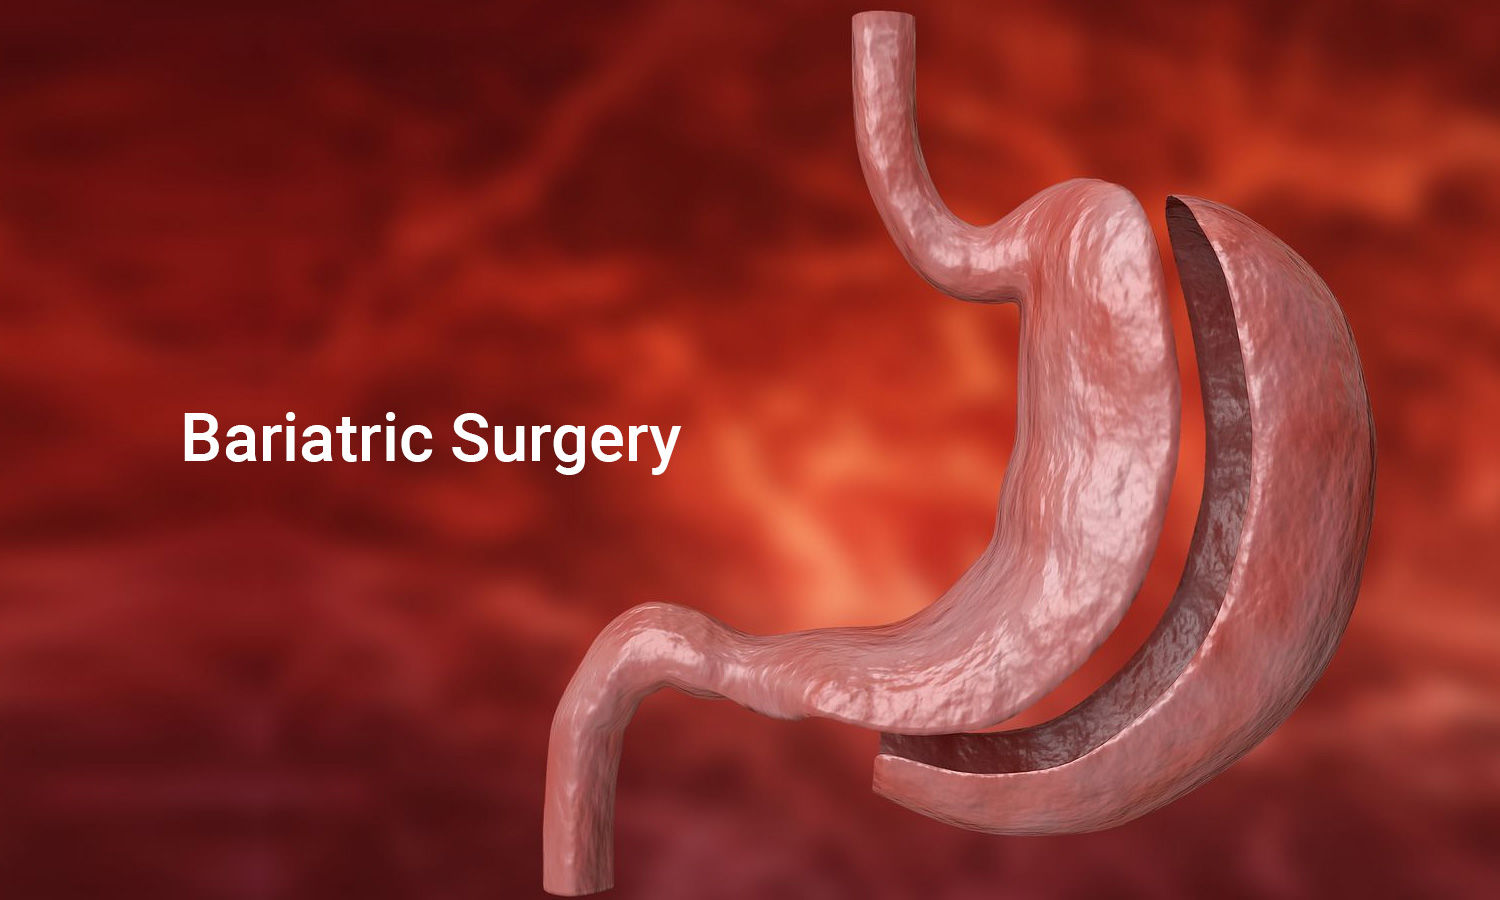 Anti-obesity drugs may help maintain weight loss after bariatric surgery